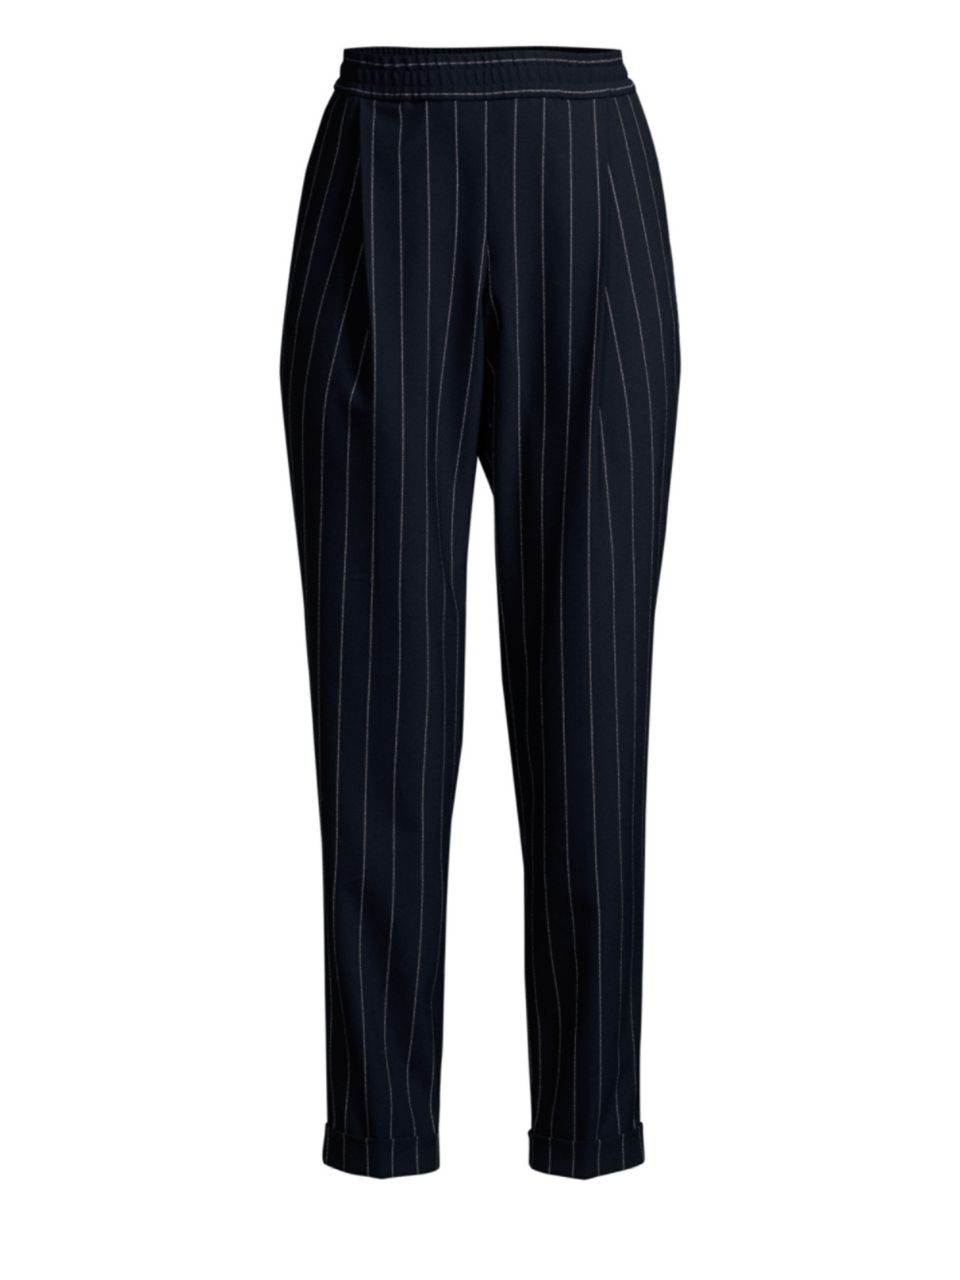 Hugo Boss Ariysa Pinstripe Cropped Trousers